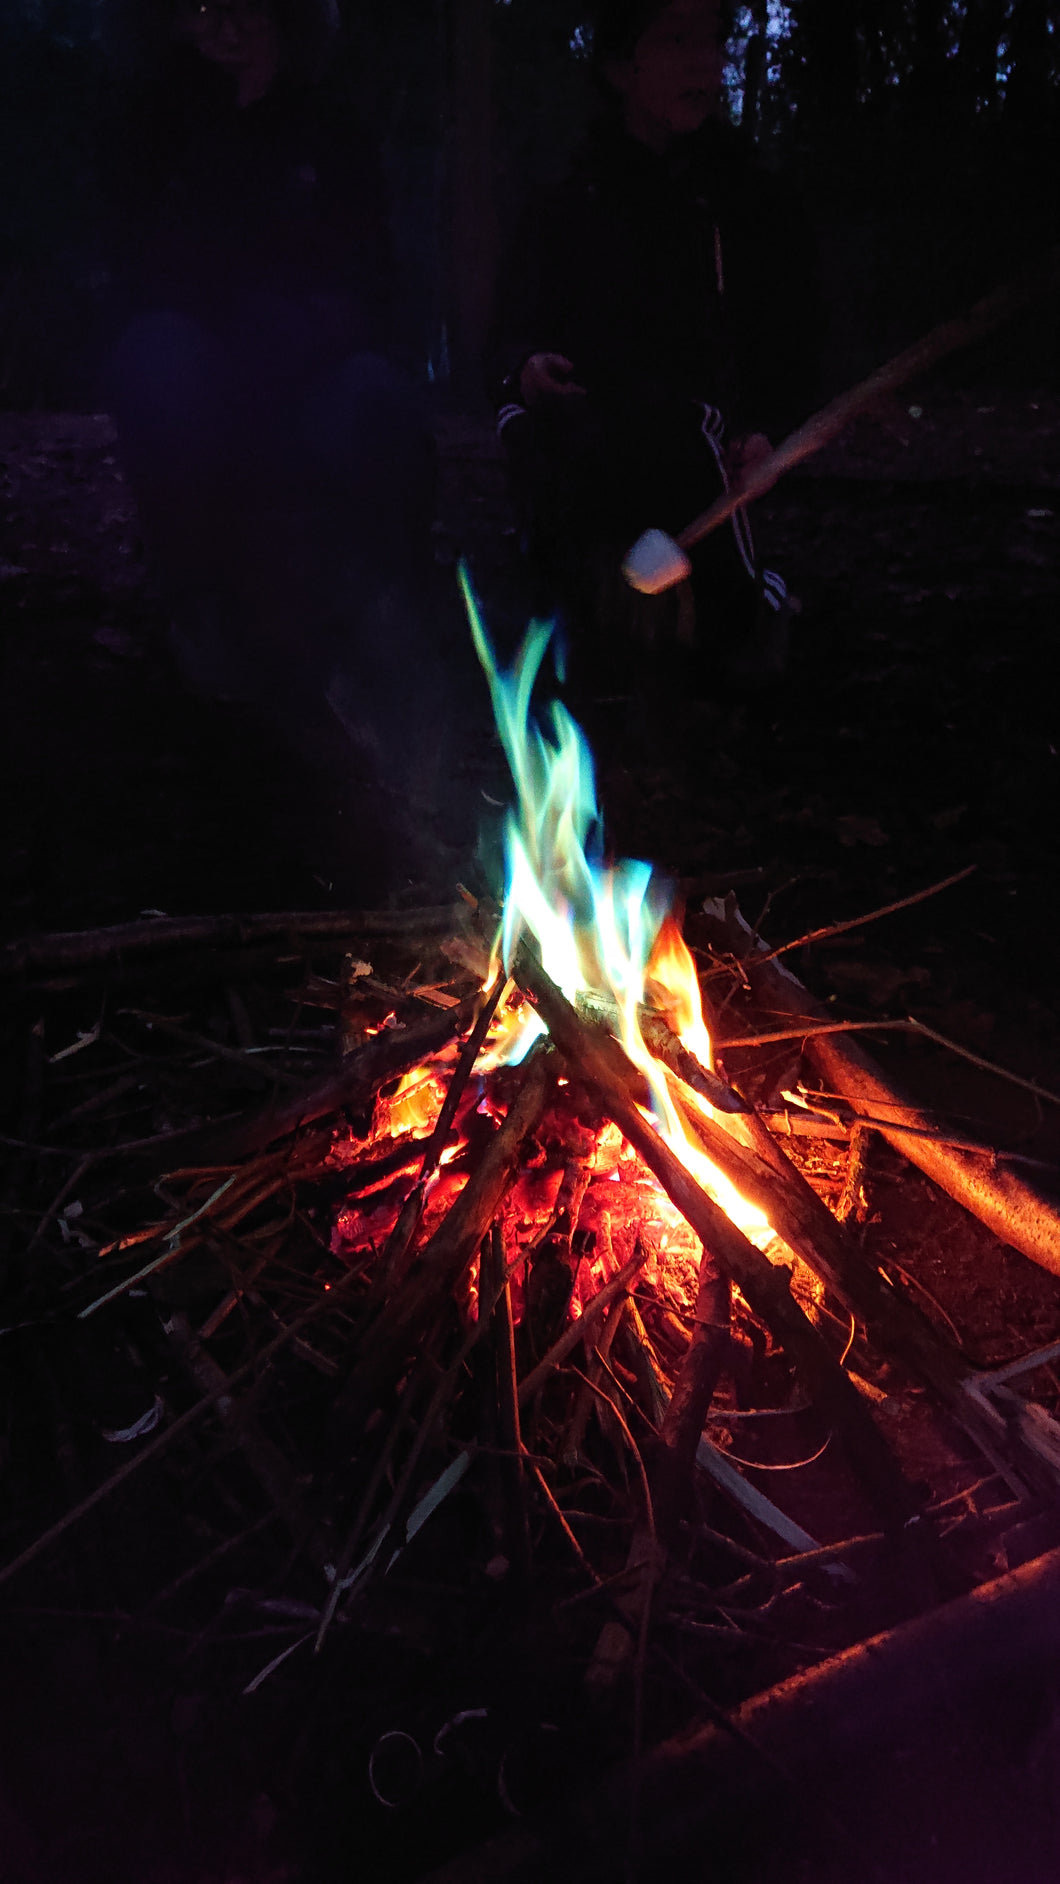 Fire Lighting Workshop - Add On Activity